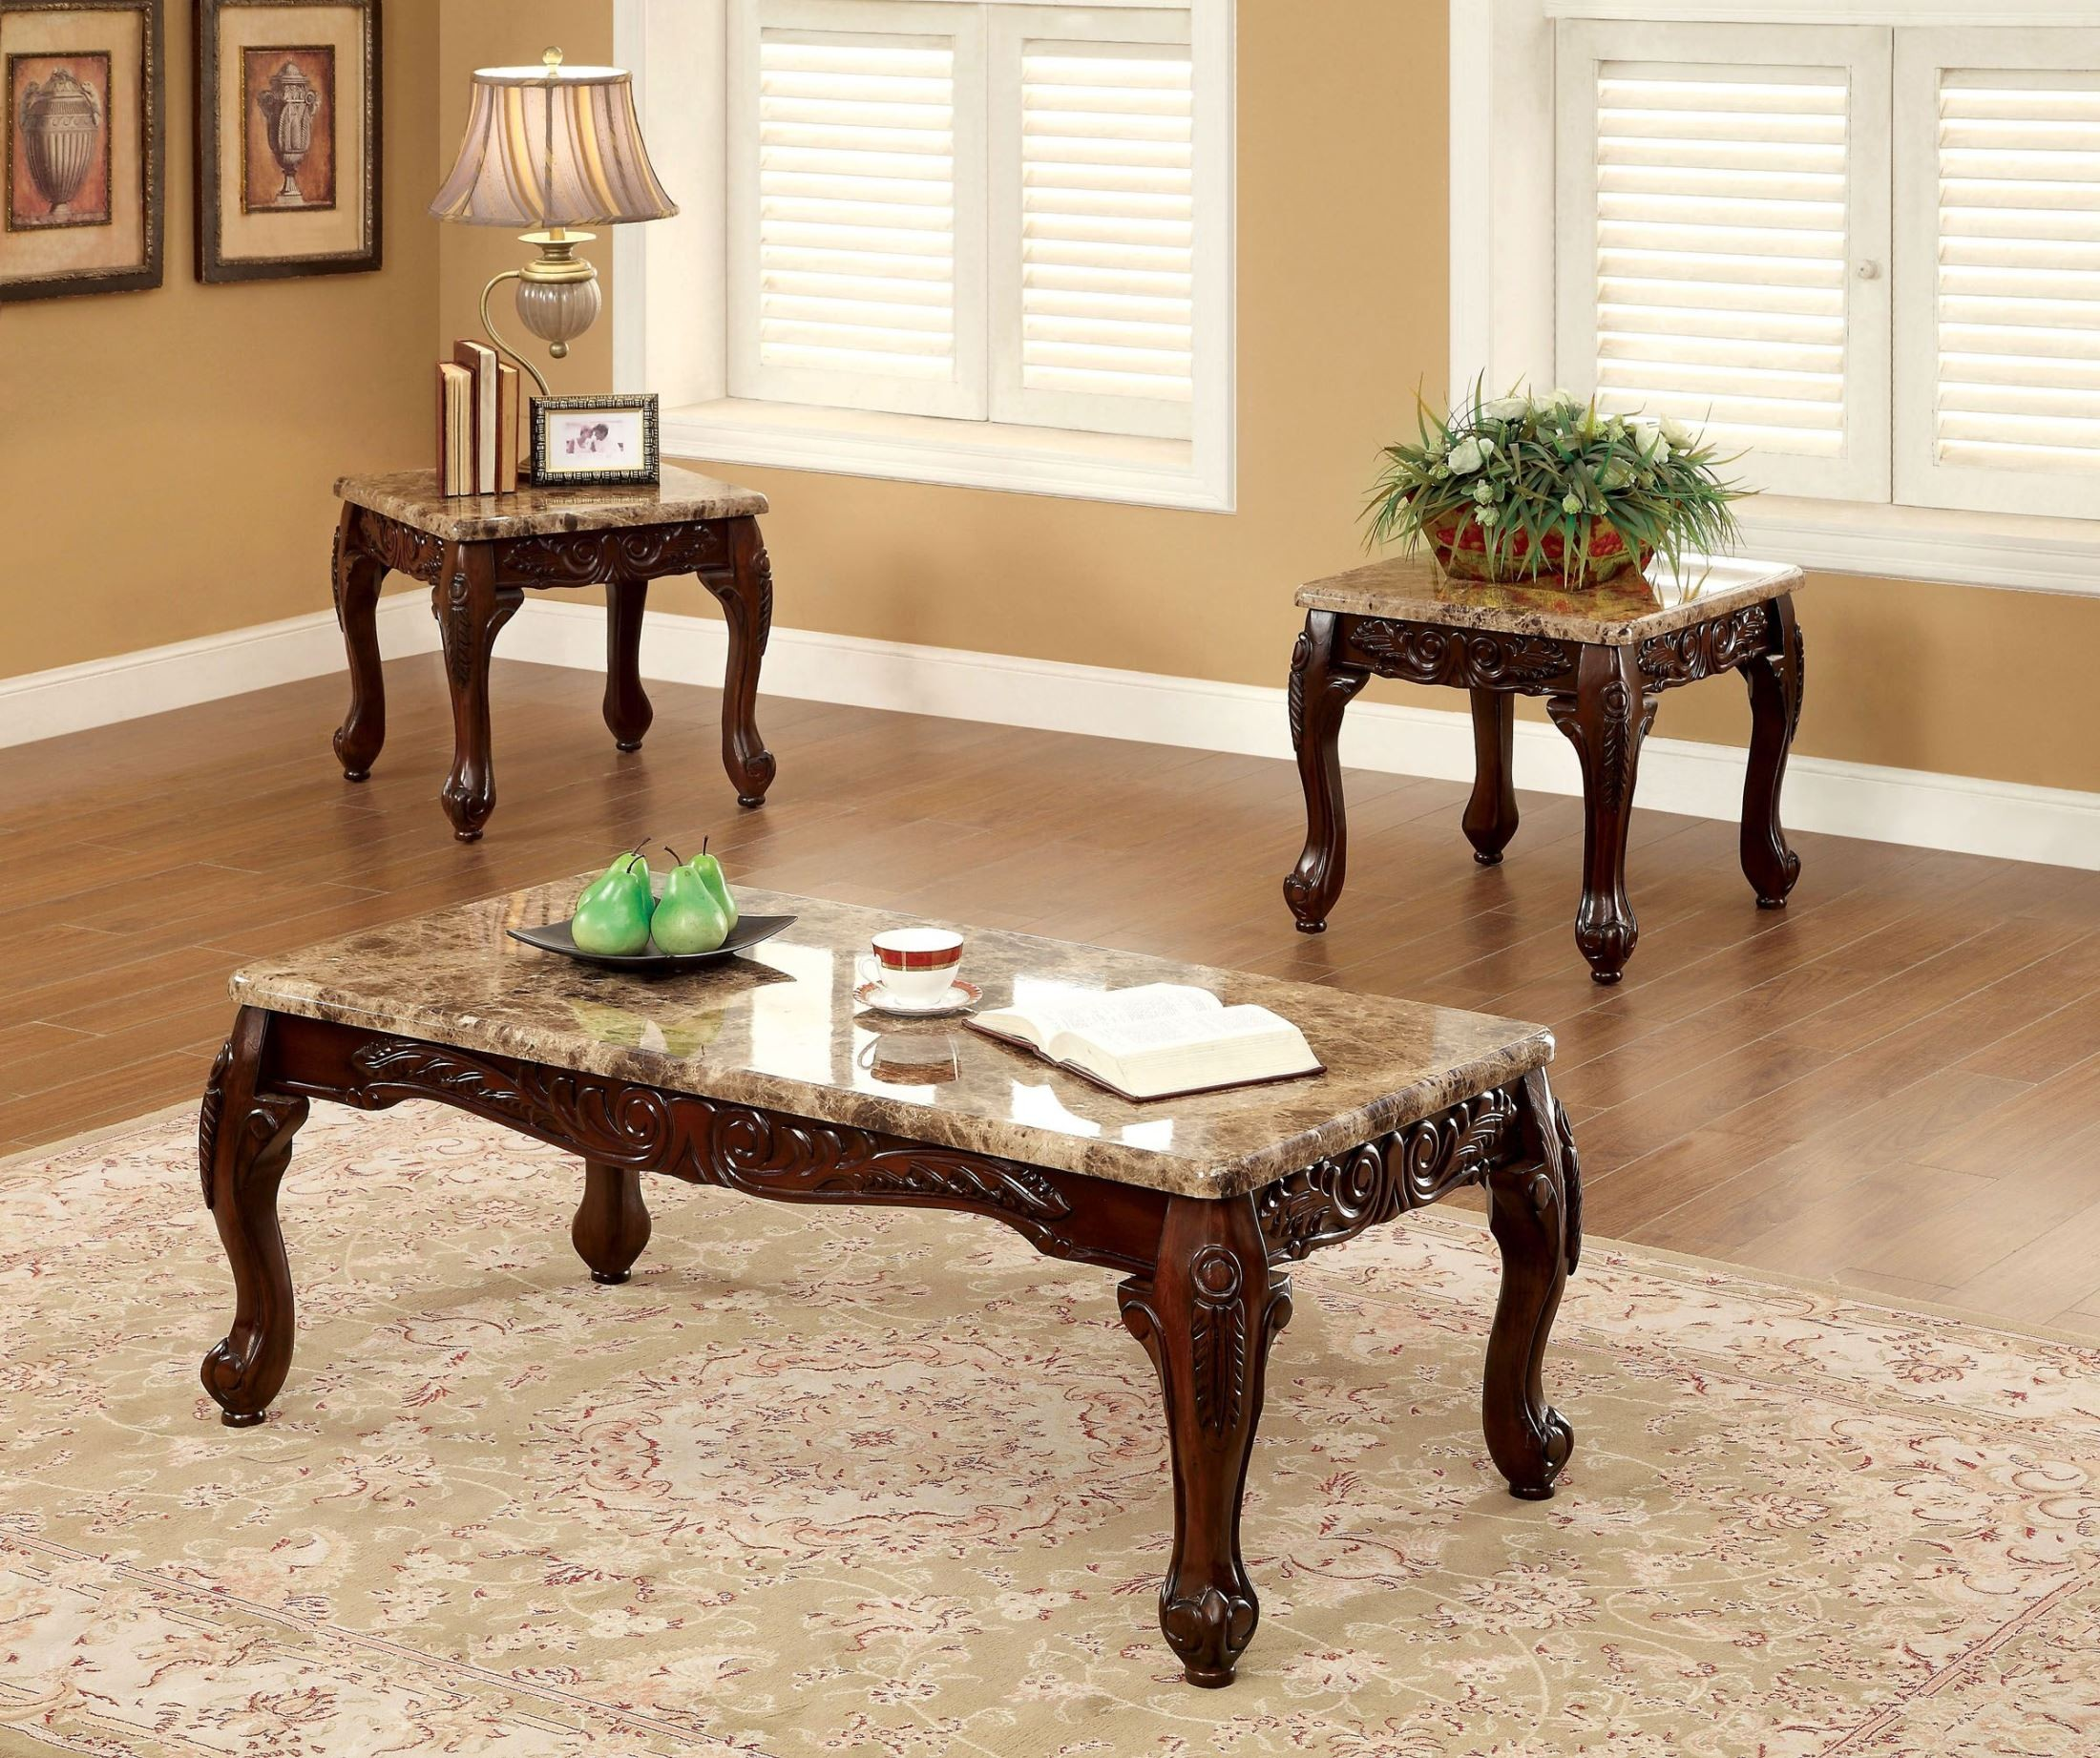 LeChester 3 Piece Occasional Table Set From Furniture Of